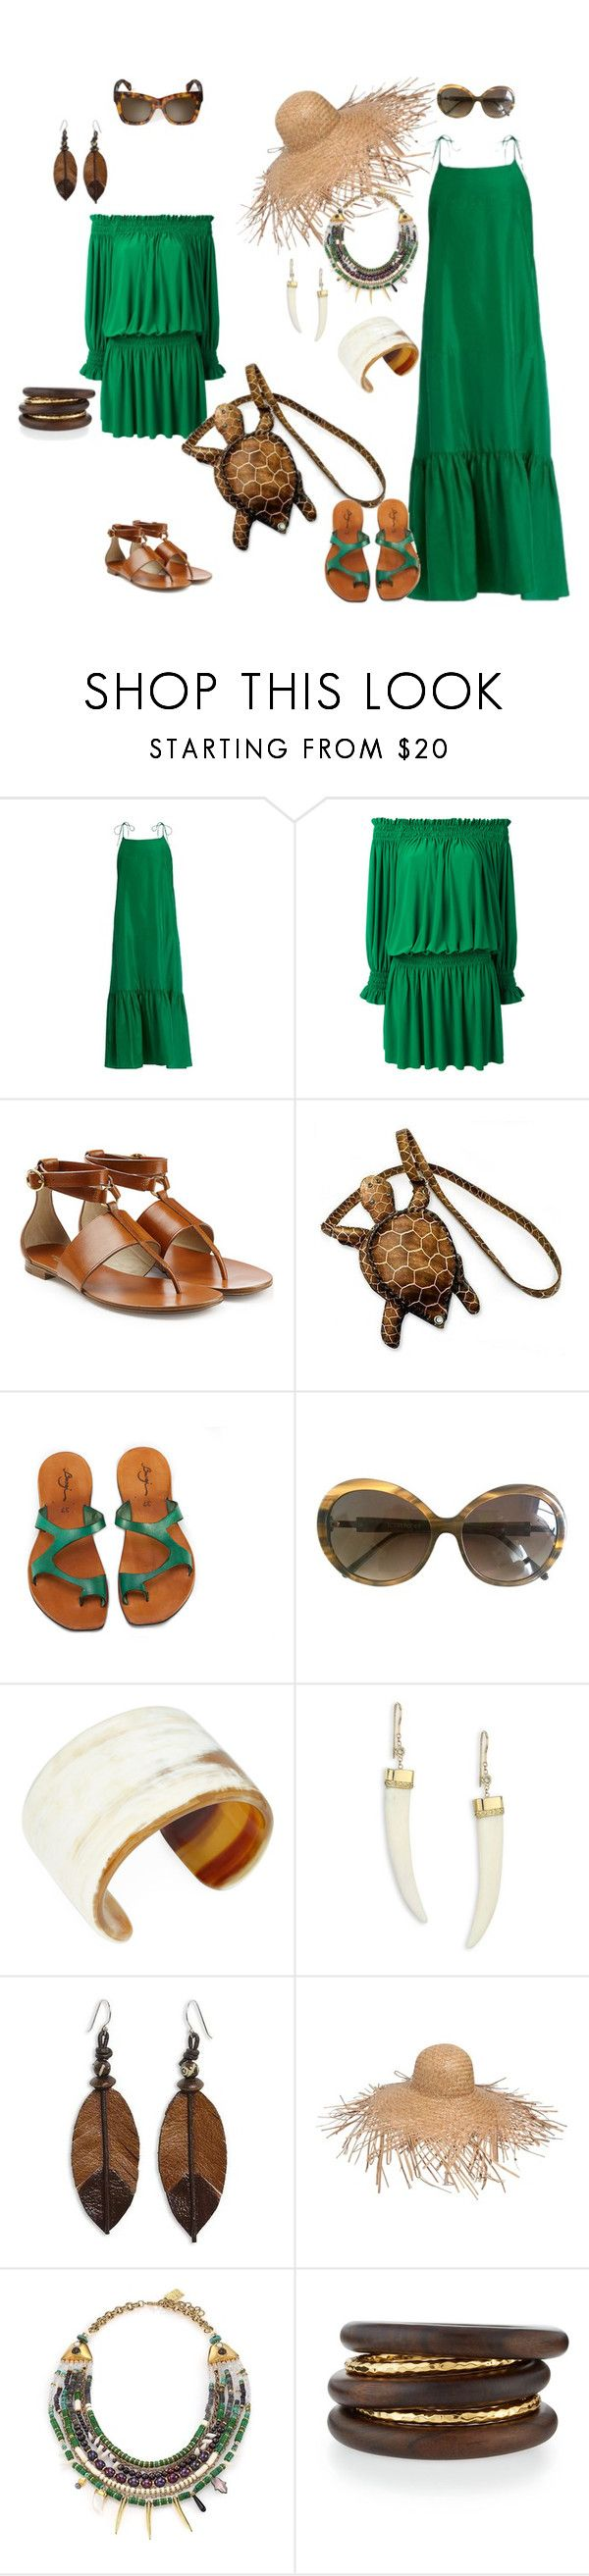 """Для города и тропиков"" by repriza ❤ liked on Polyvore featuring Loup Charmant, Norma Kamali, Michael Kors, NOVICA, Iceberg, Arthur Marder Fine Jewelry, Jacquie Aiche, Lack of Color, Lizzie Fortunato and NEST Jewelry"